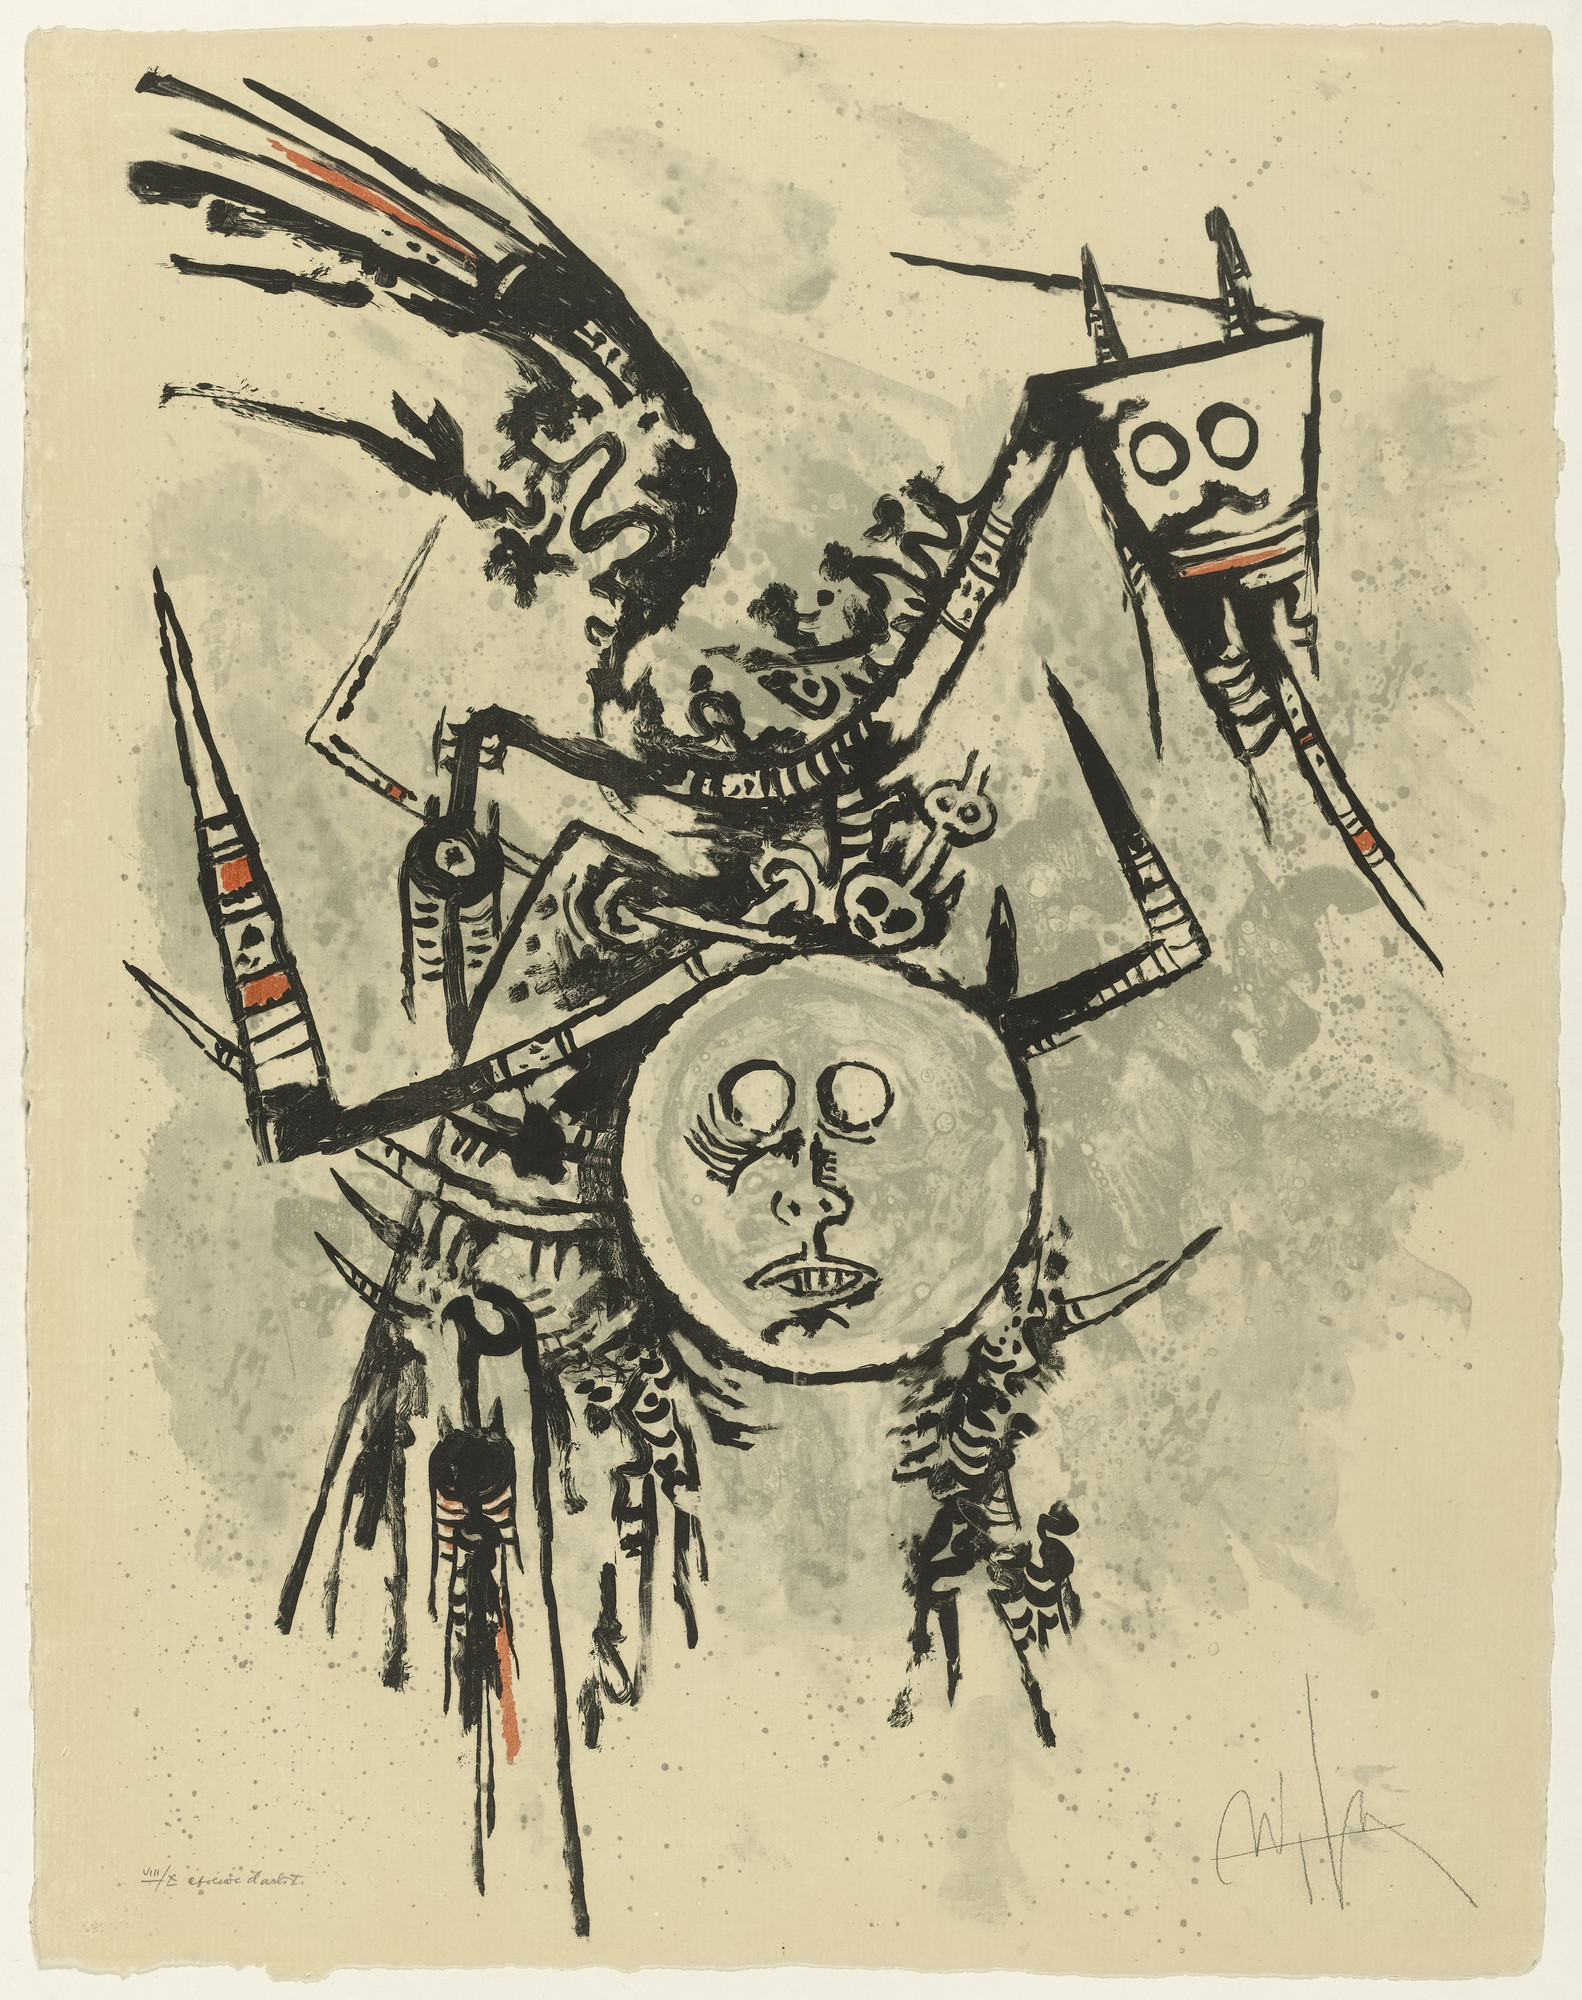 Wifredo Lam. Untitled from Flight. 1969, published 1971